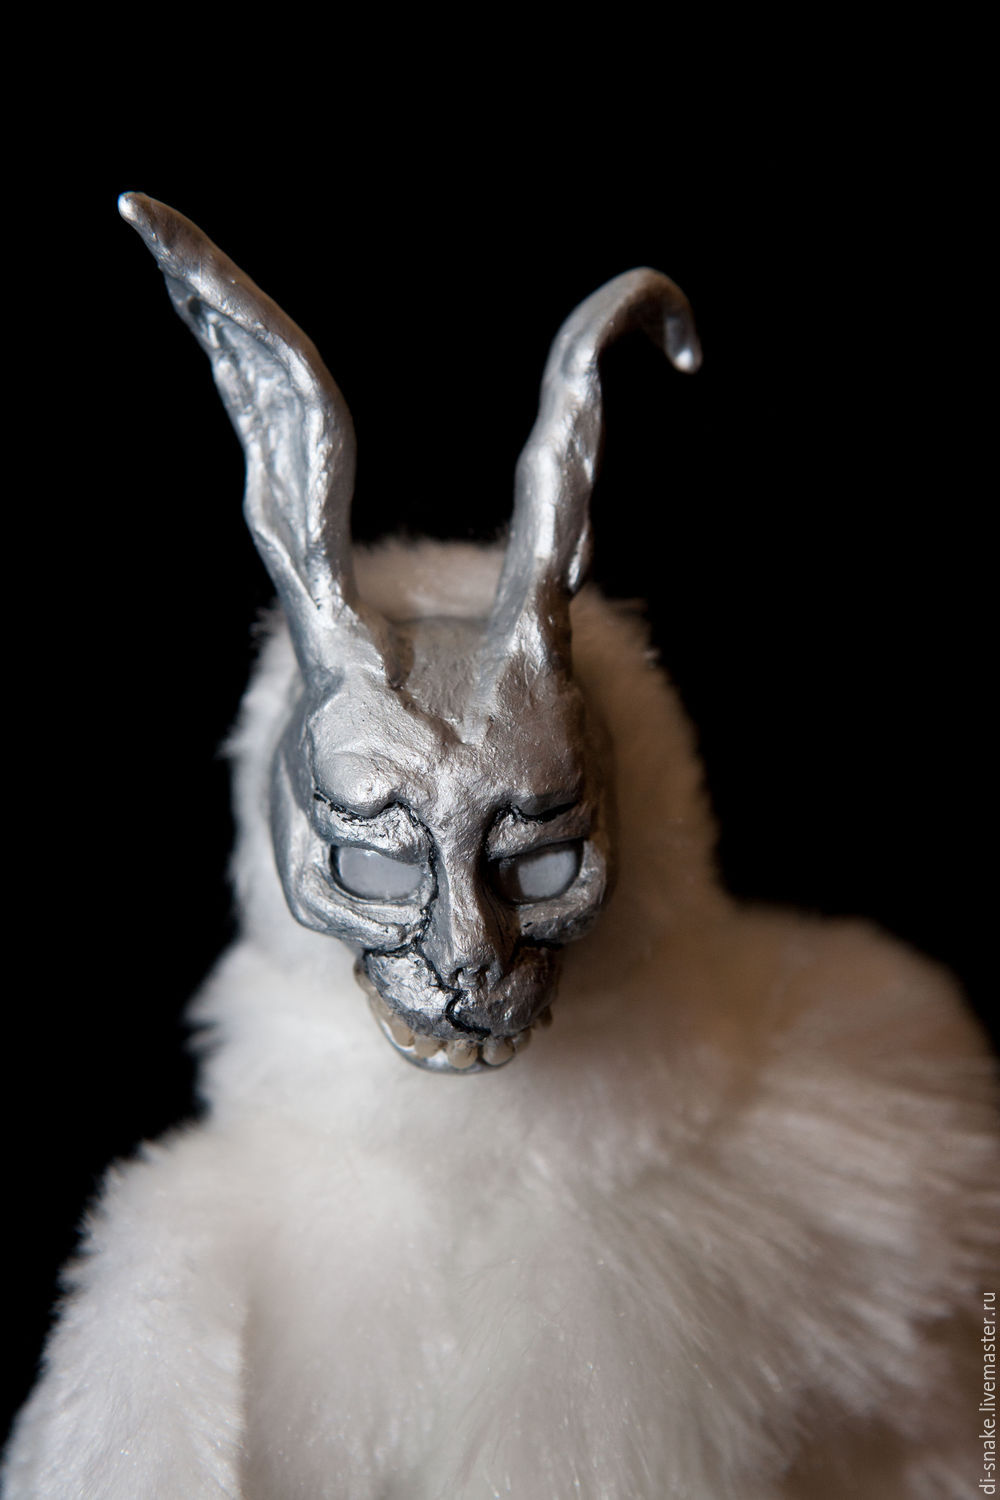 Rabbit in white Frank (Donny Darko) personal order, Dolls, Moscow,  Фото №1